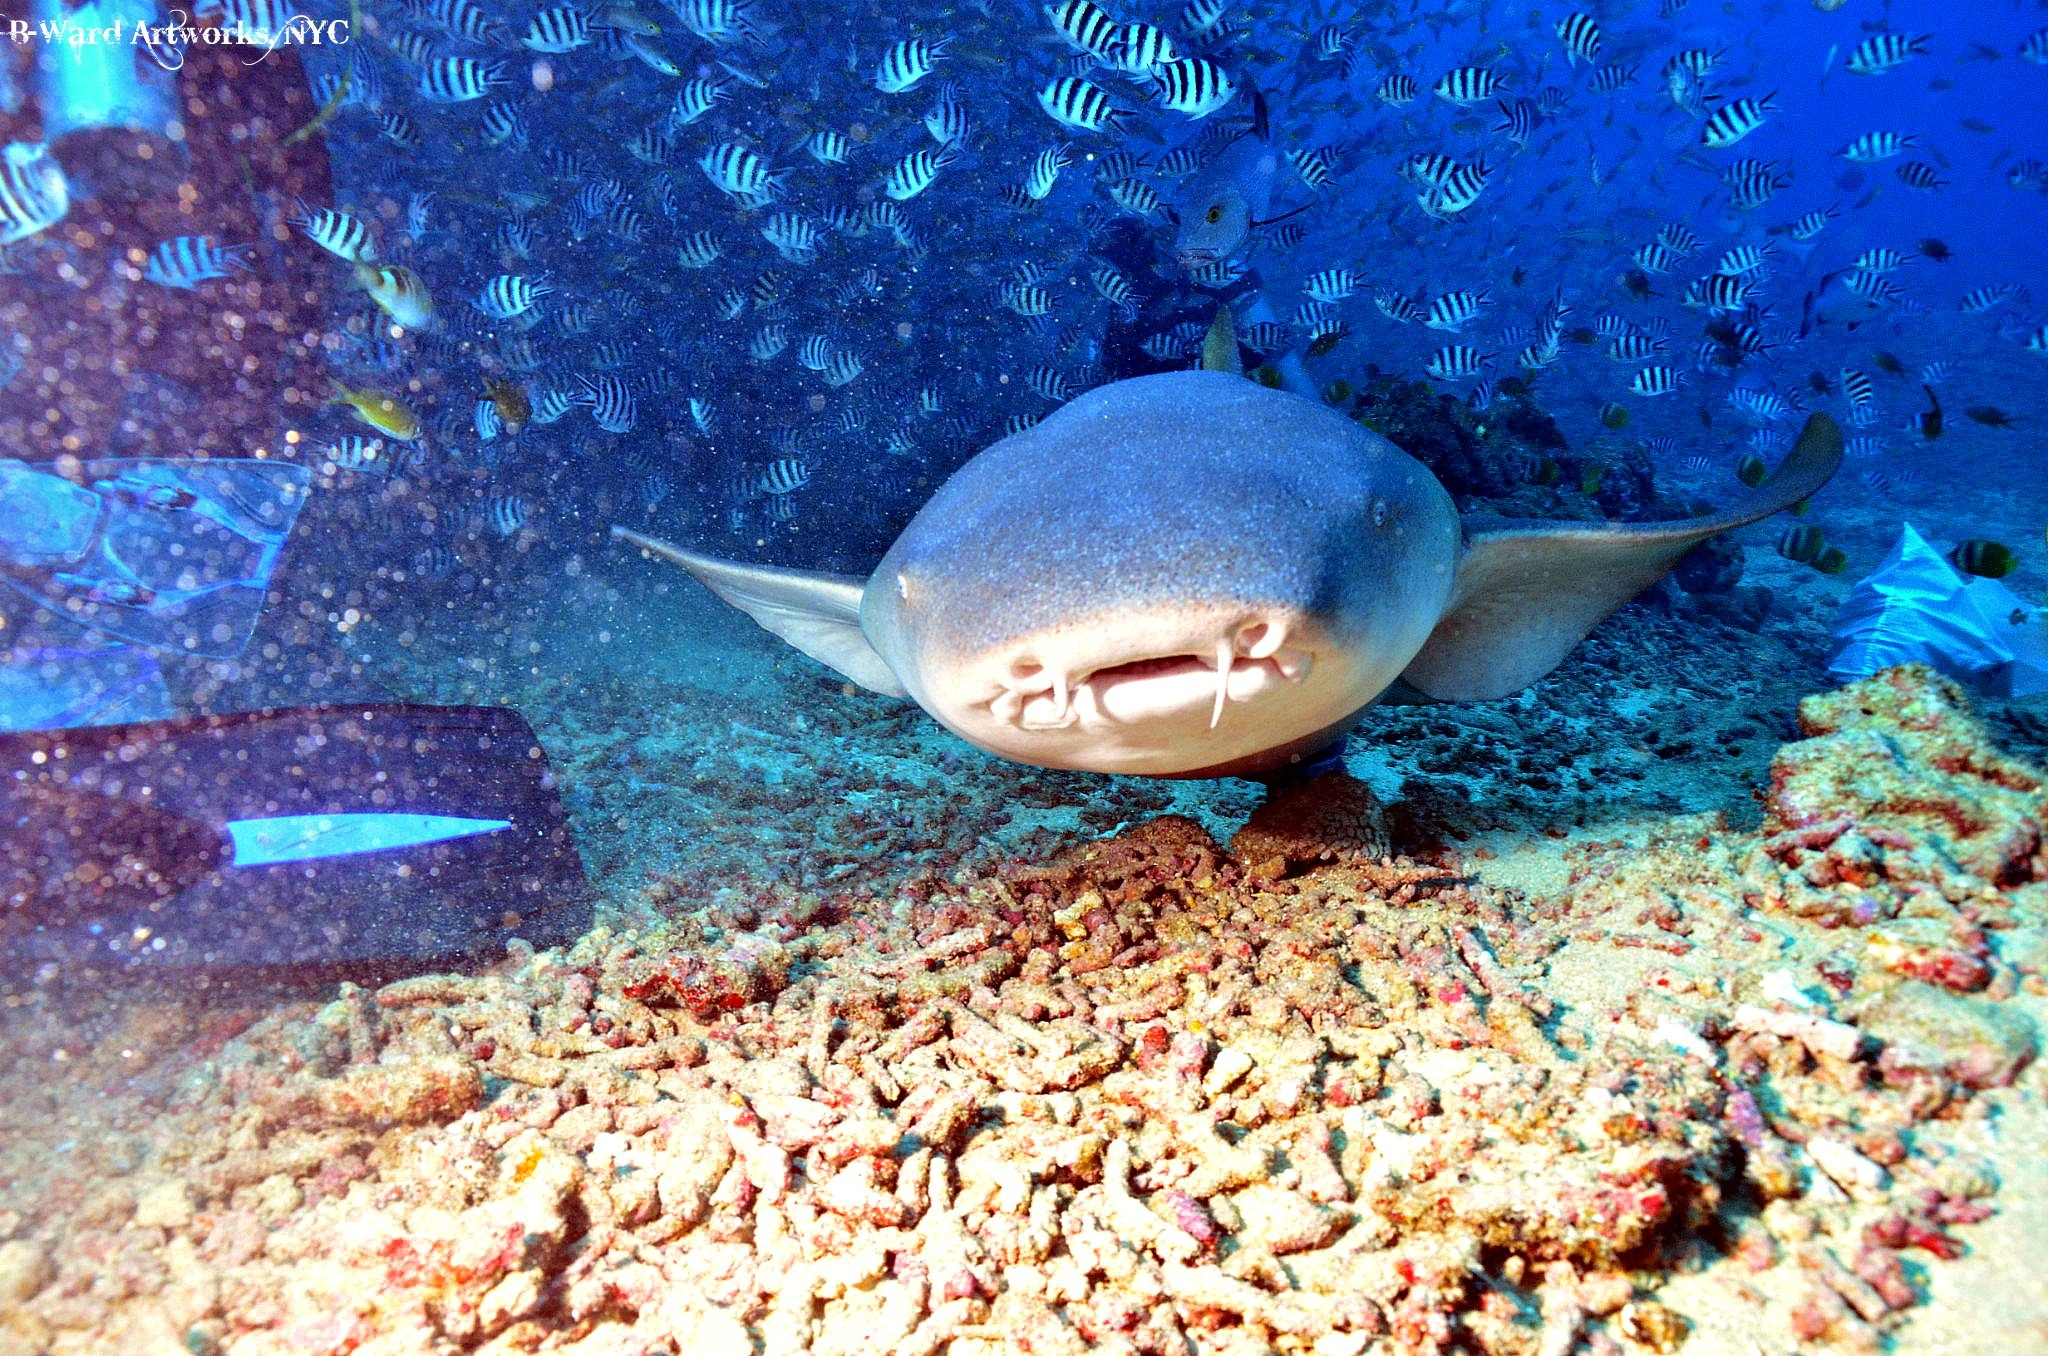 Scuba Nurse Shark coming in close to give me a kiss!